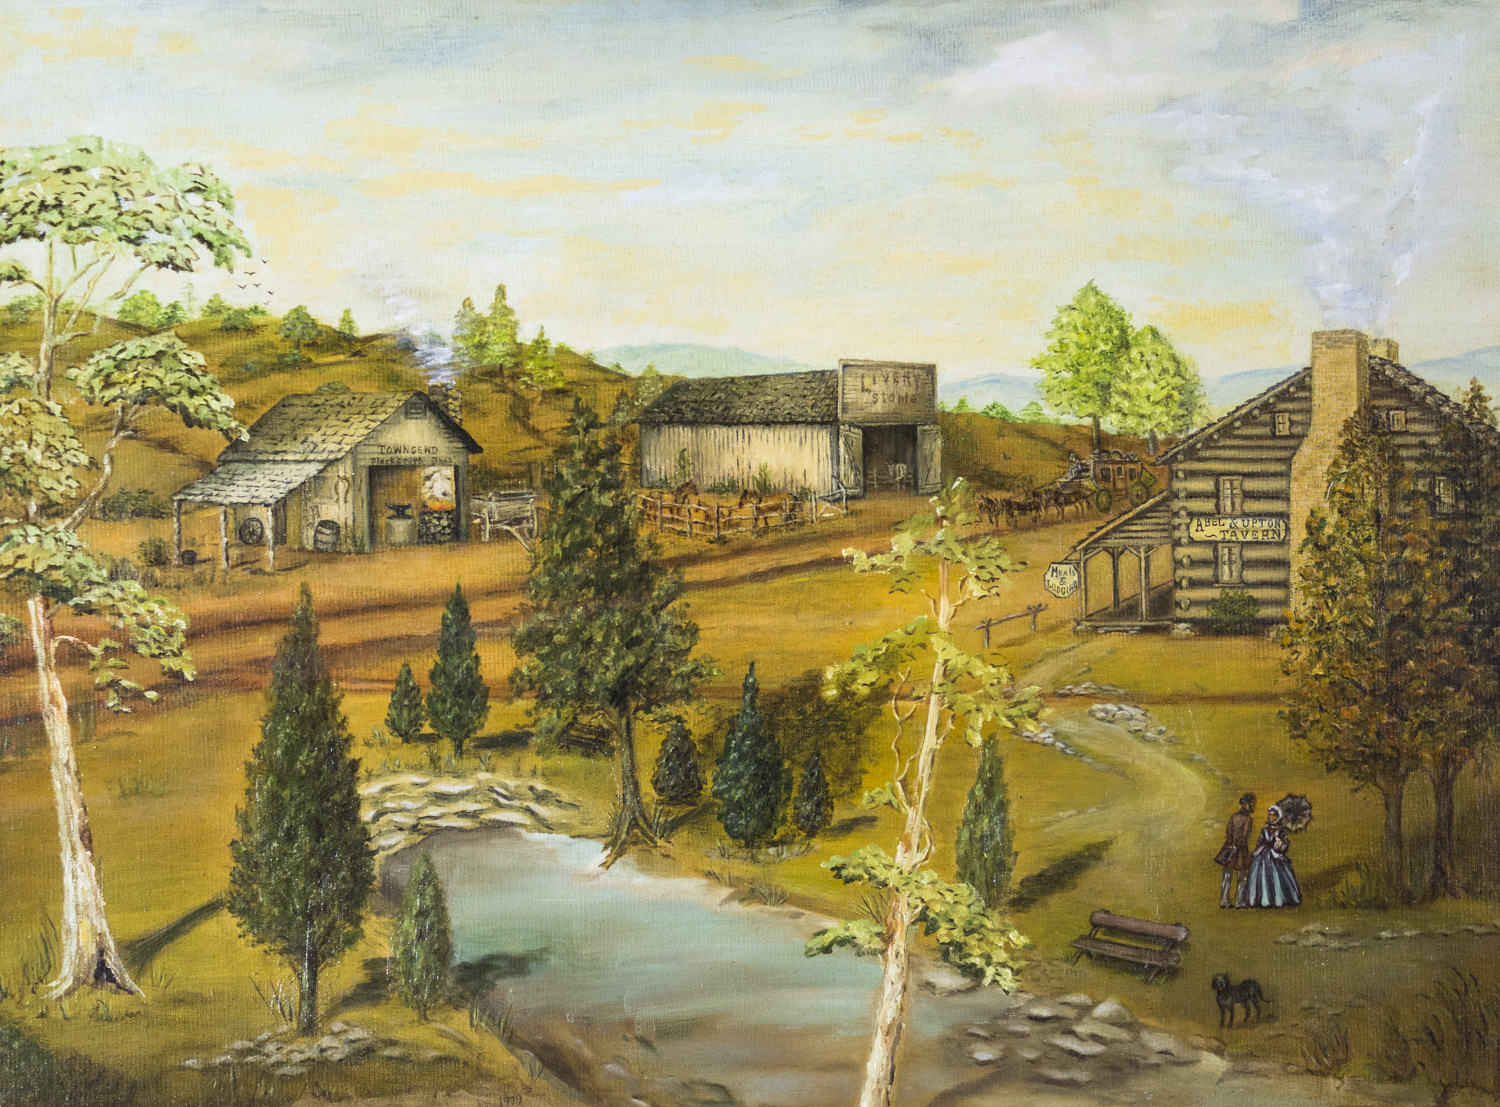 Big Spring by Frances Sweat Upchurch, 1979, Oil, 11 Paintings collection from Foundation